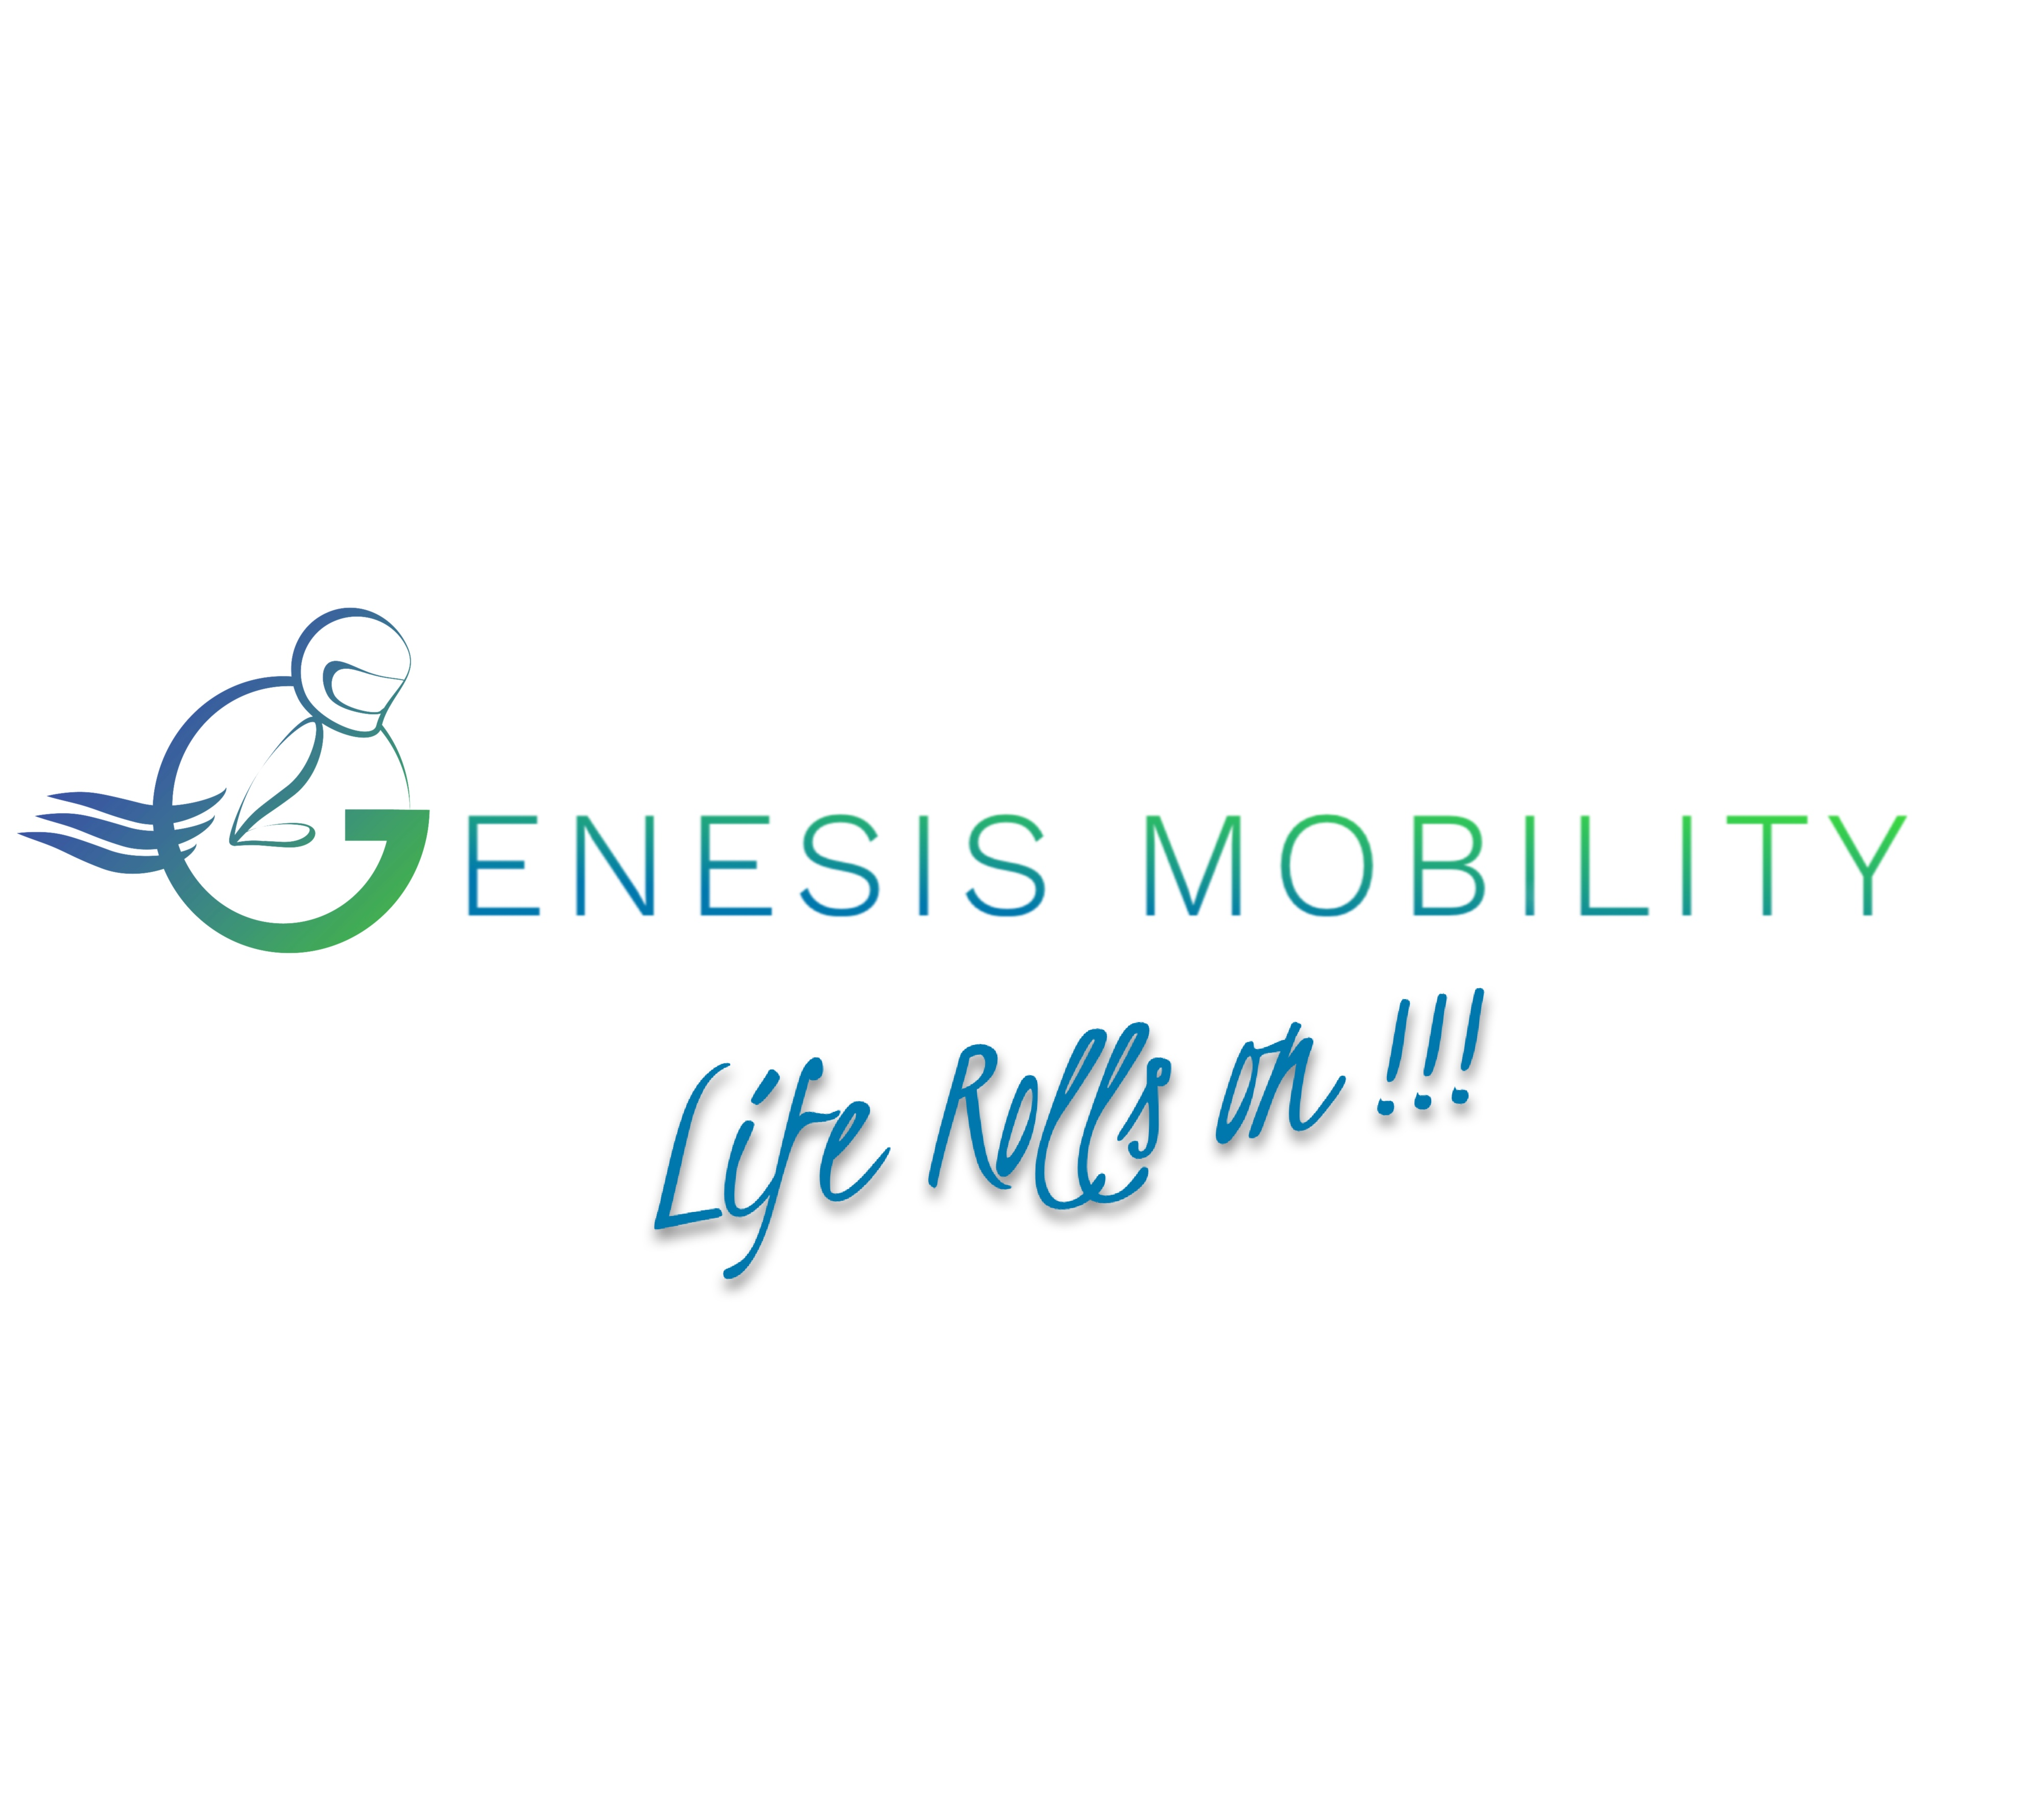 Genesis Mobility